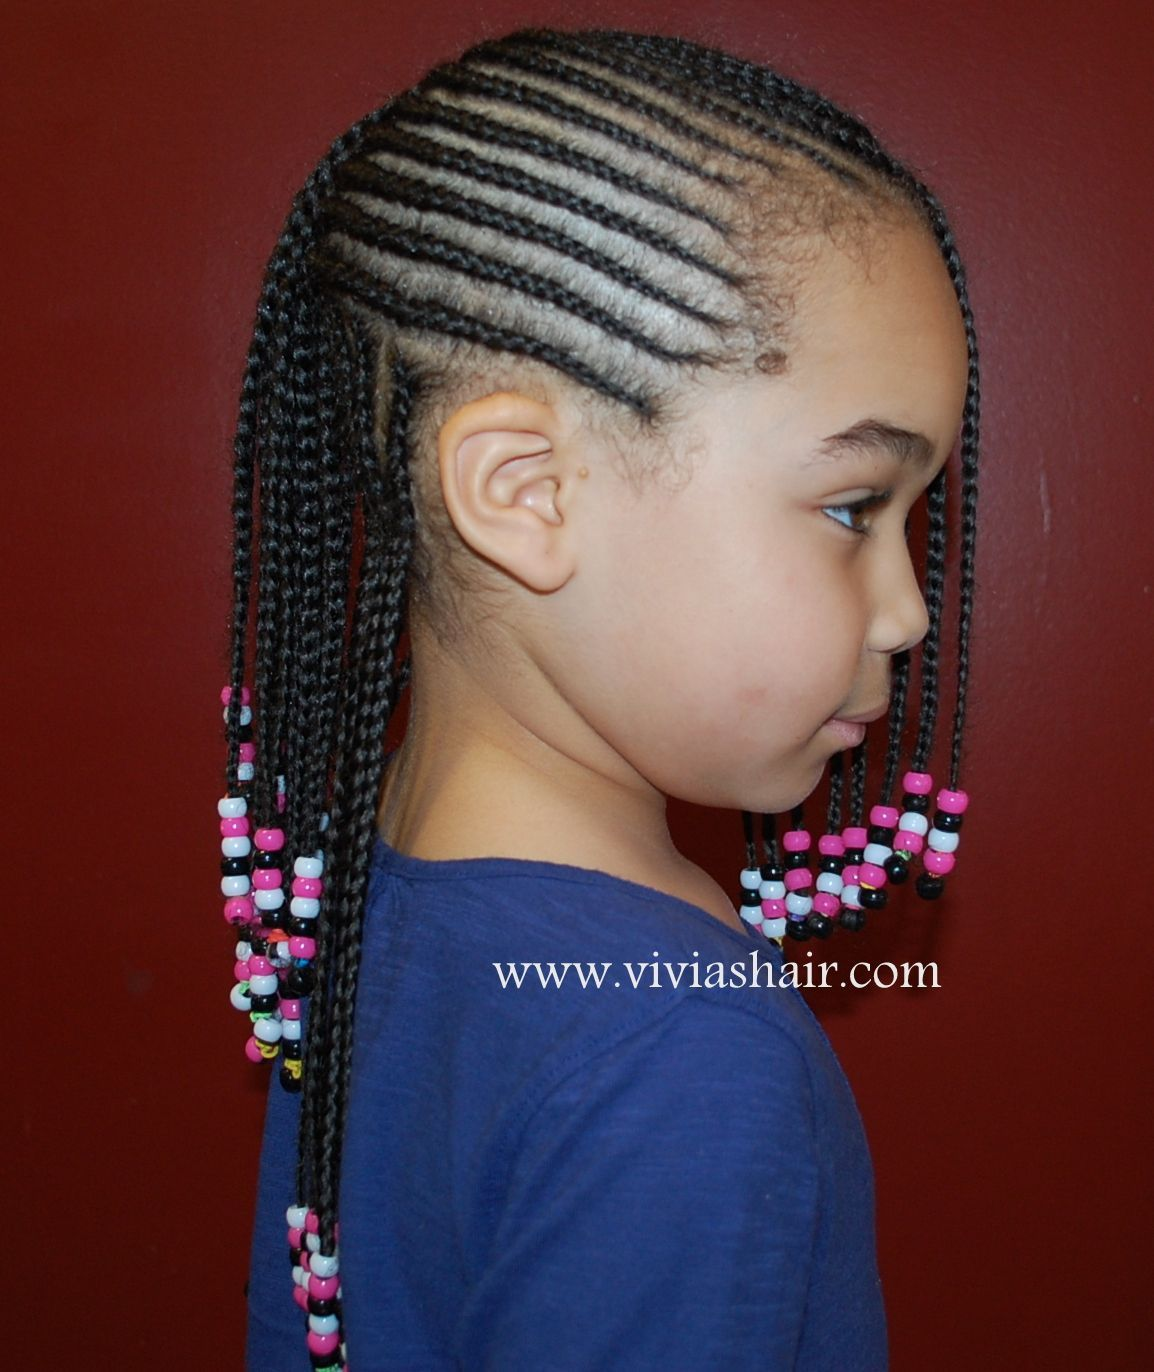 I love these braids except i would prefer them a little larger for